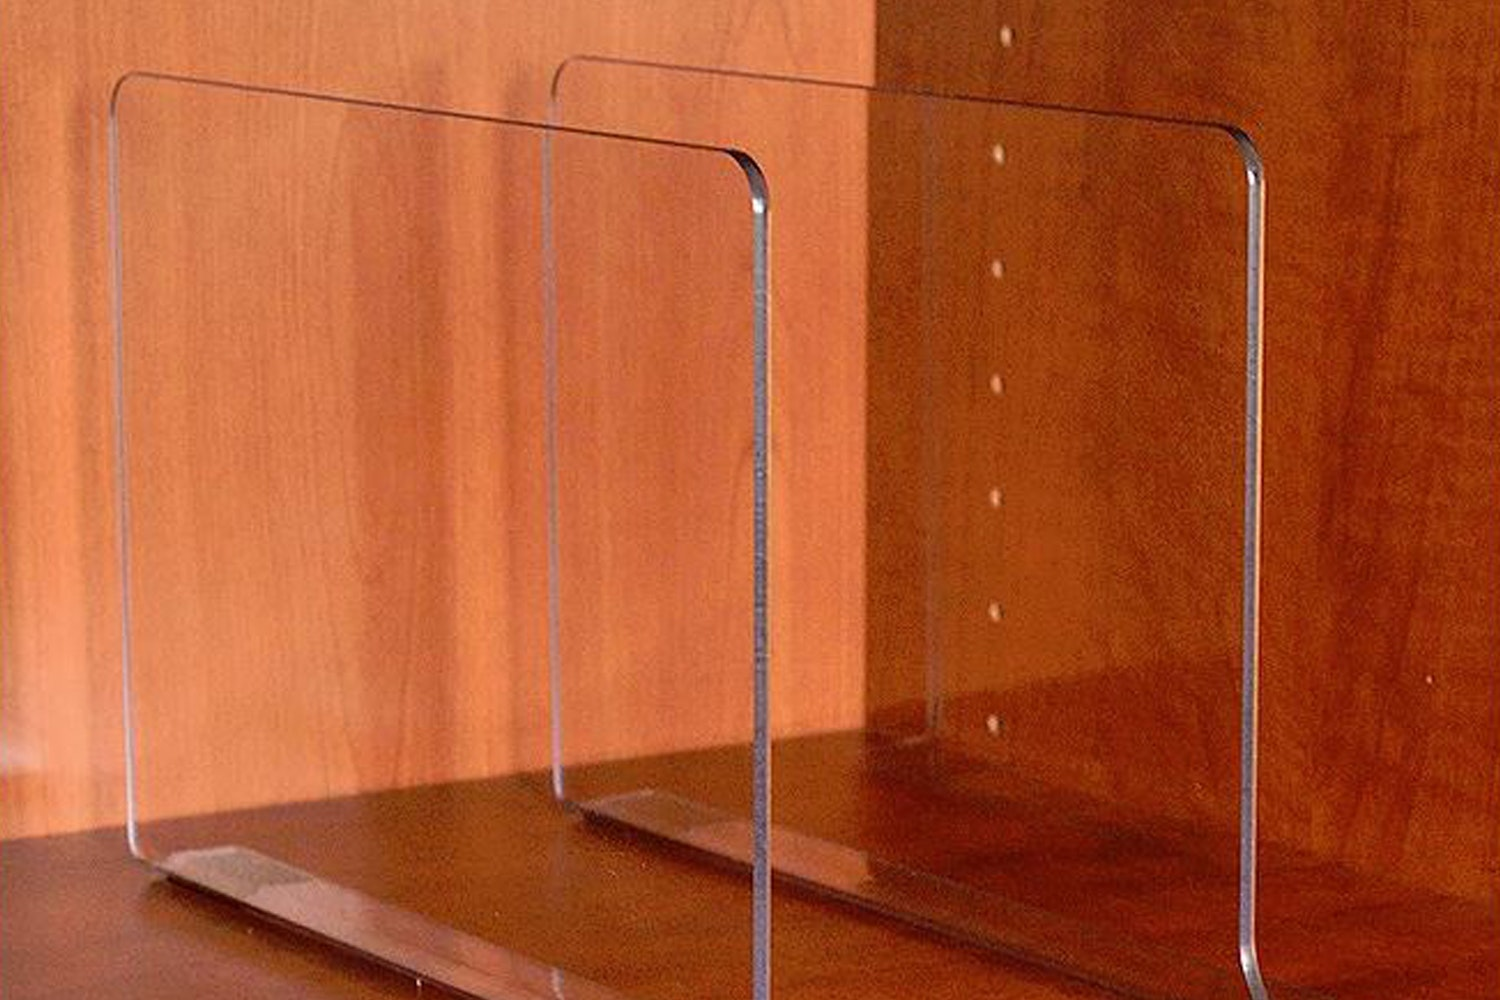 Acrylic Shelf Dividers (2-pack) (+ $20)